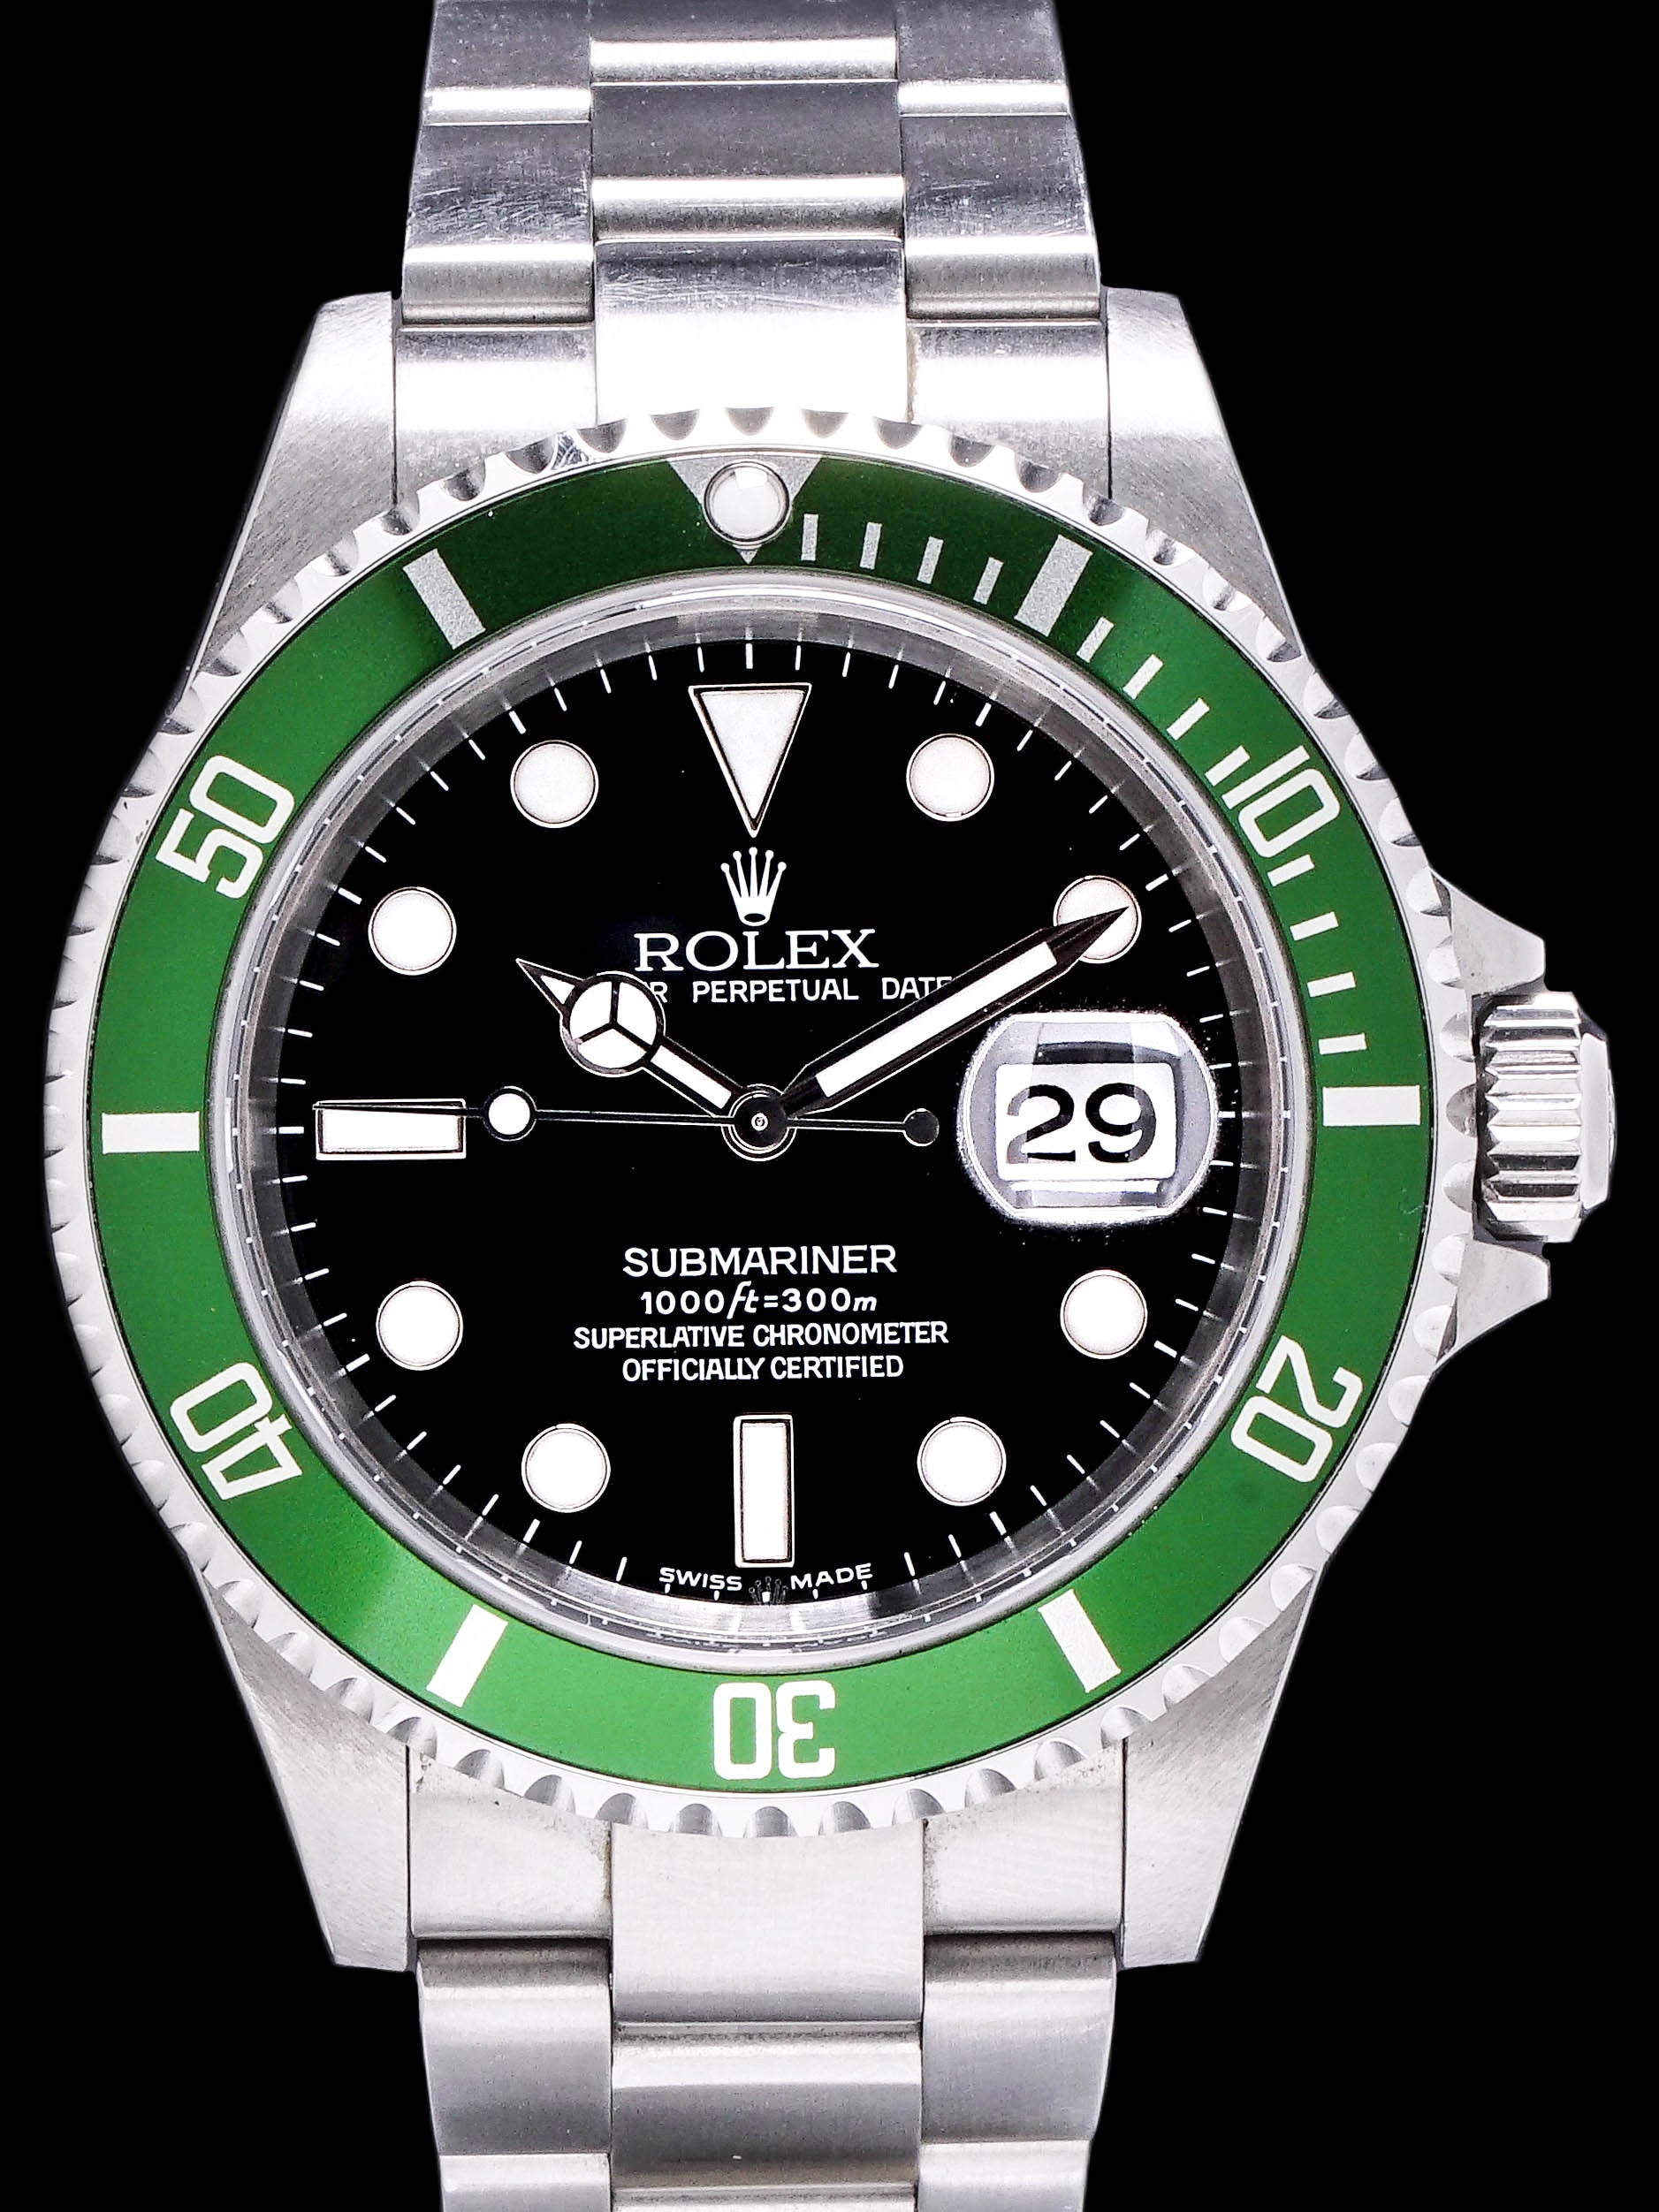 "2003 Rolex Green Submariner (Ref. 16610LV) Mk.1 ""Flat 4"" W/ Box, Papers"